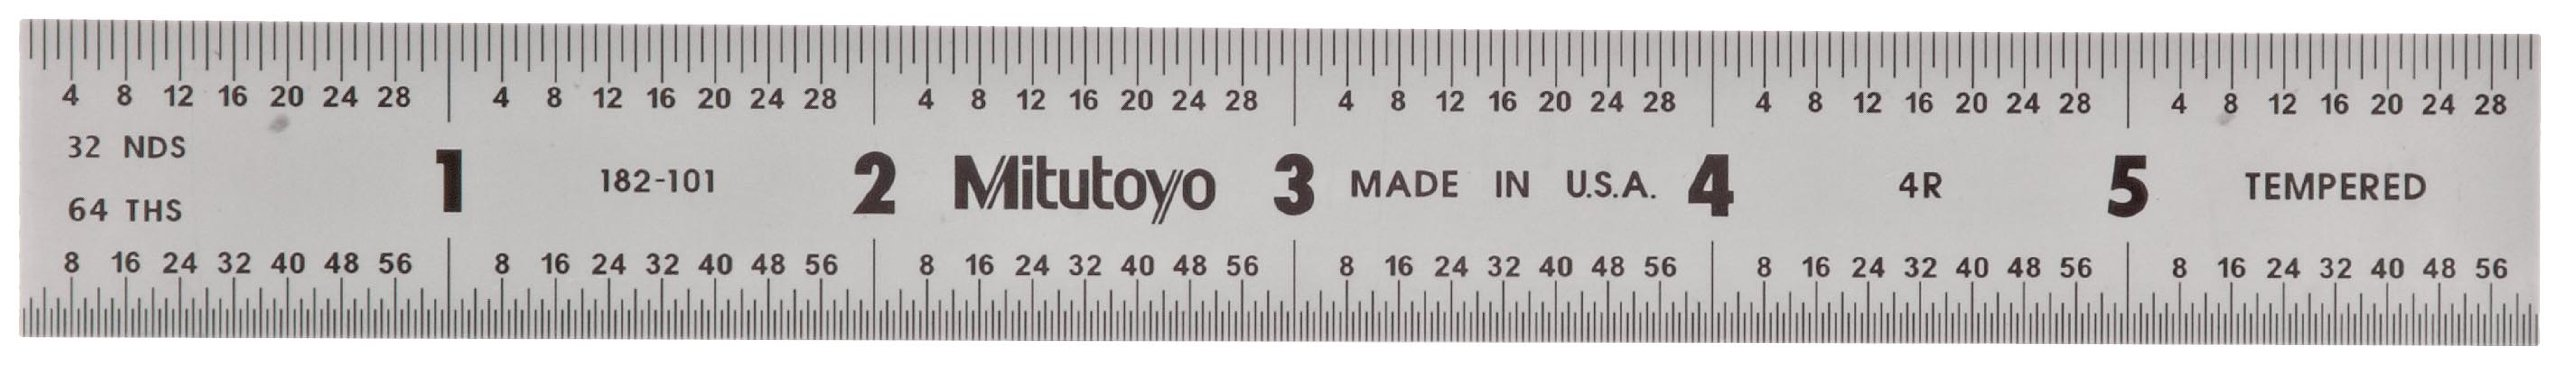 Mitutoyo 182-101, Steel Rule, 6'' (4R), (1/8, 1/16, 1/32, 1/64''), 3/64'' Thick X 3/4'' Wide, Satin Chrome Finish Tempered Stainless Steel